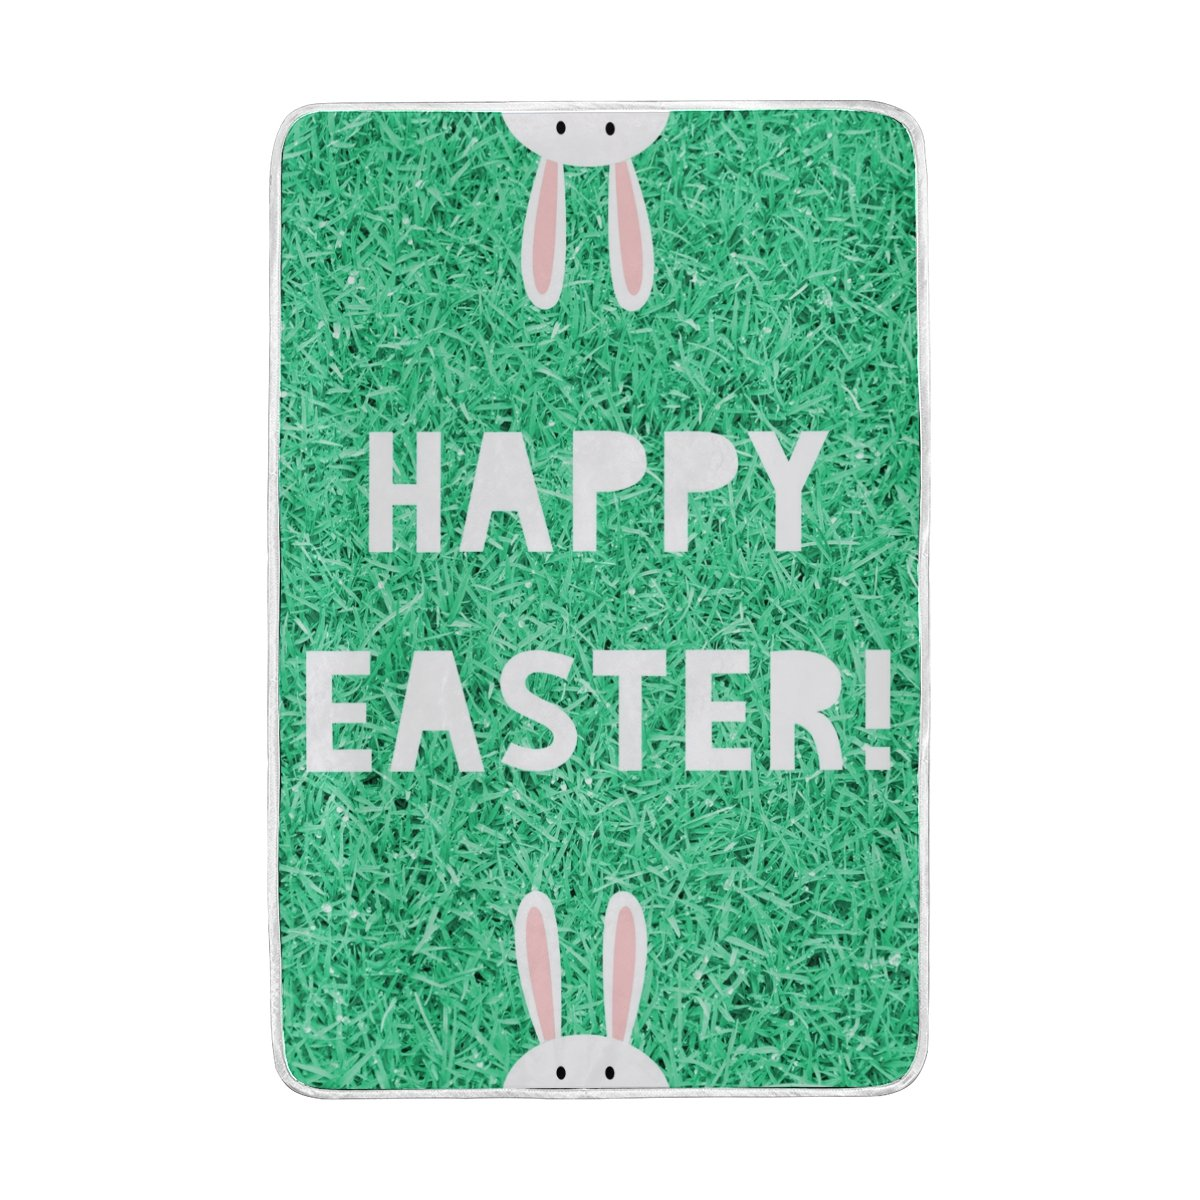 My Little Nest Happy Easter Green Grass Rabbit Cozy Throw Blanket Lightweight MicrofiberSoft Warm Blankets Everyday Use for Bed Couch Sofa 60'' x 90''